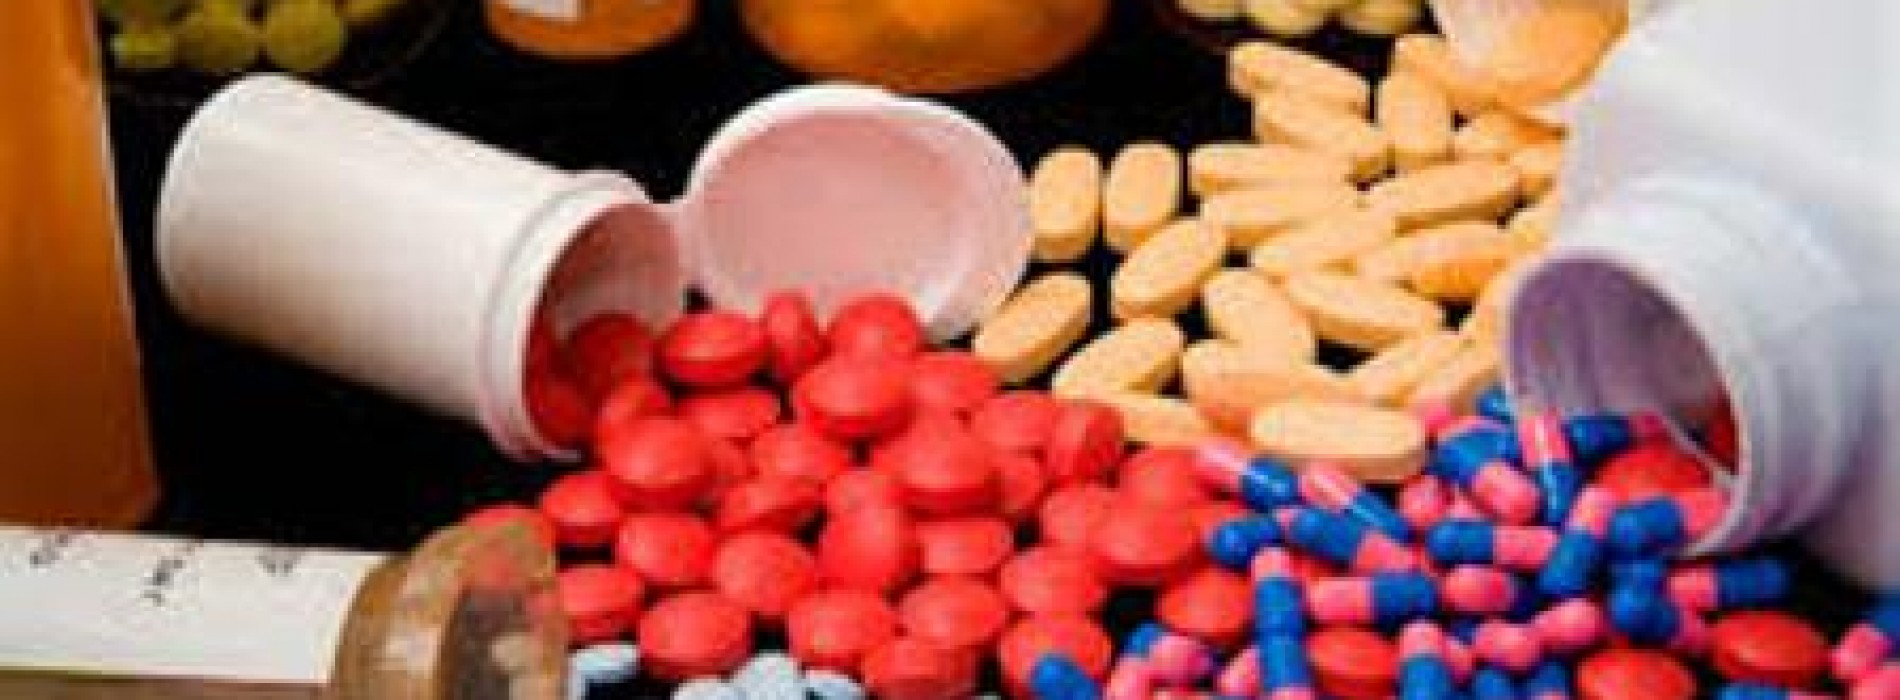 FG warns against use of unprescribed drugs